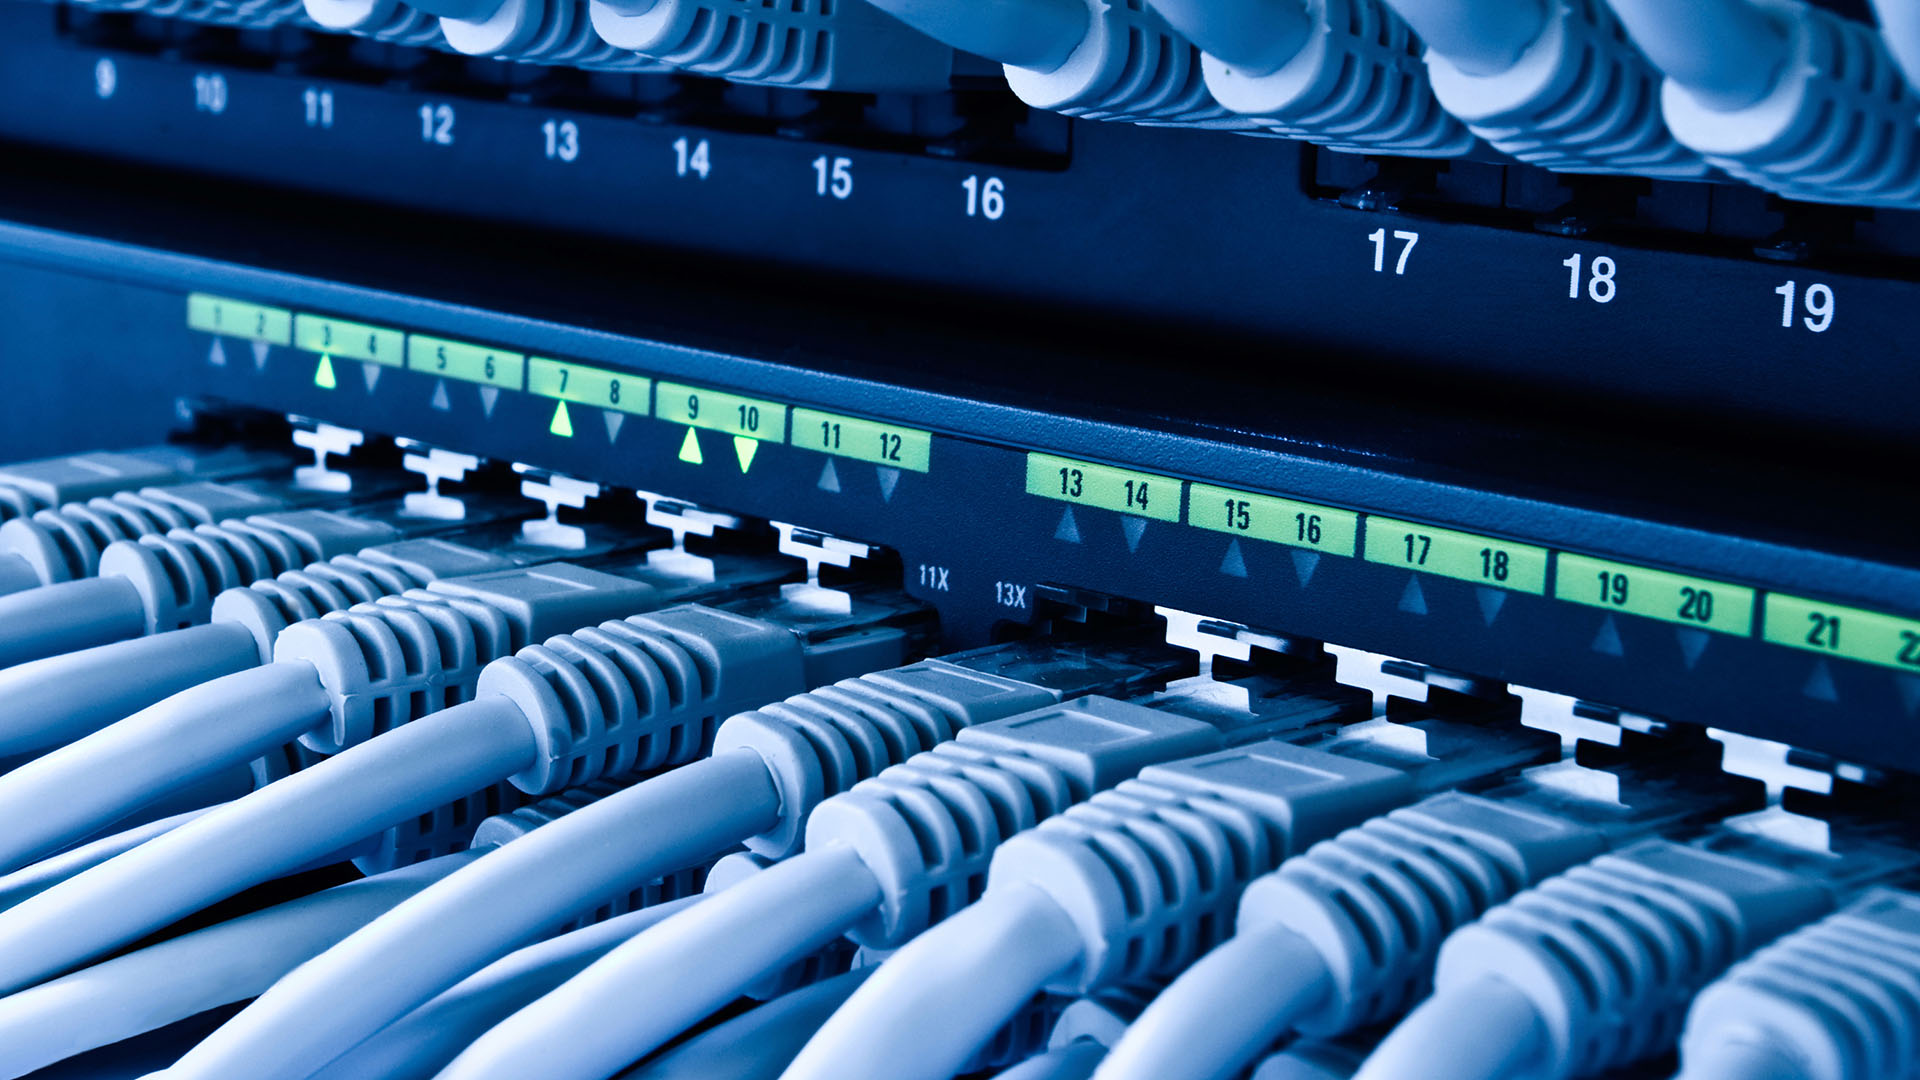 Coral Springs Florida Preferred Voice & Data Network Cabling Provider